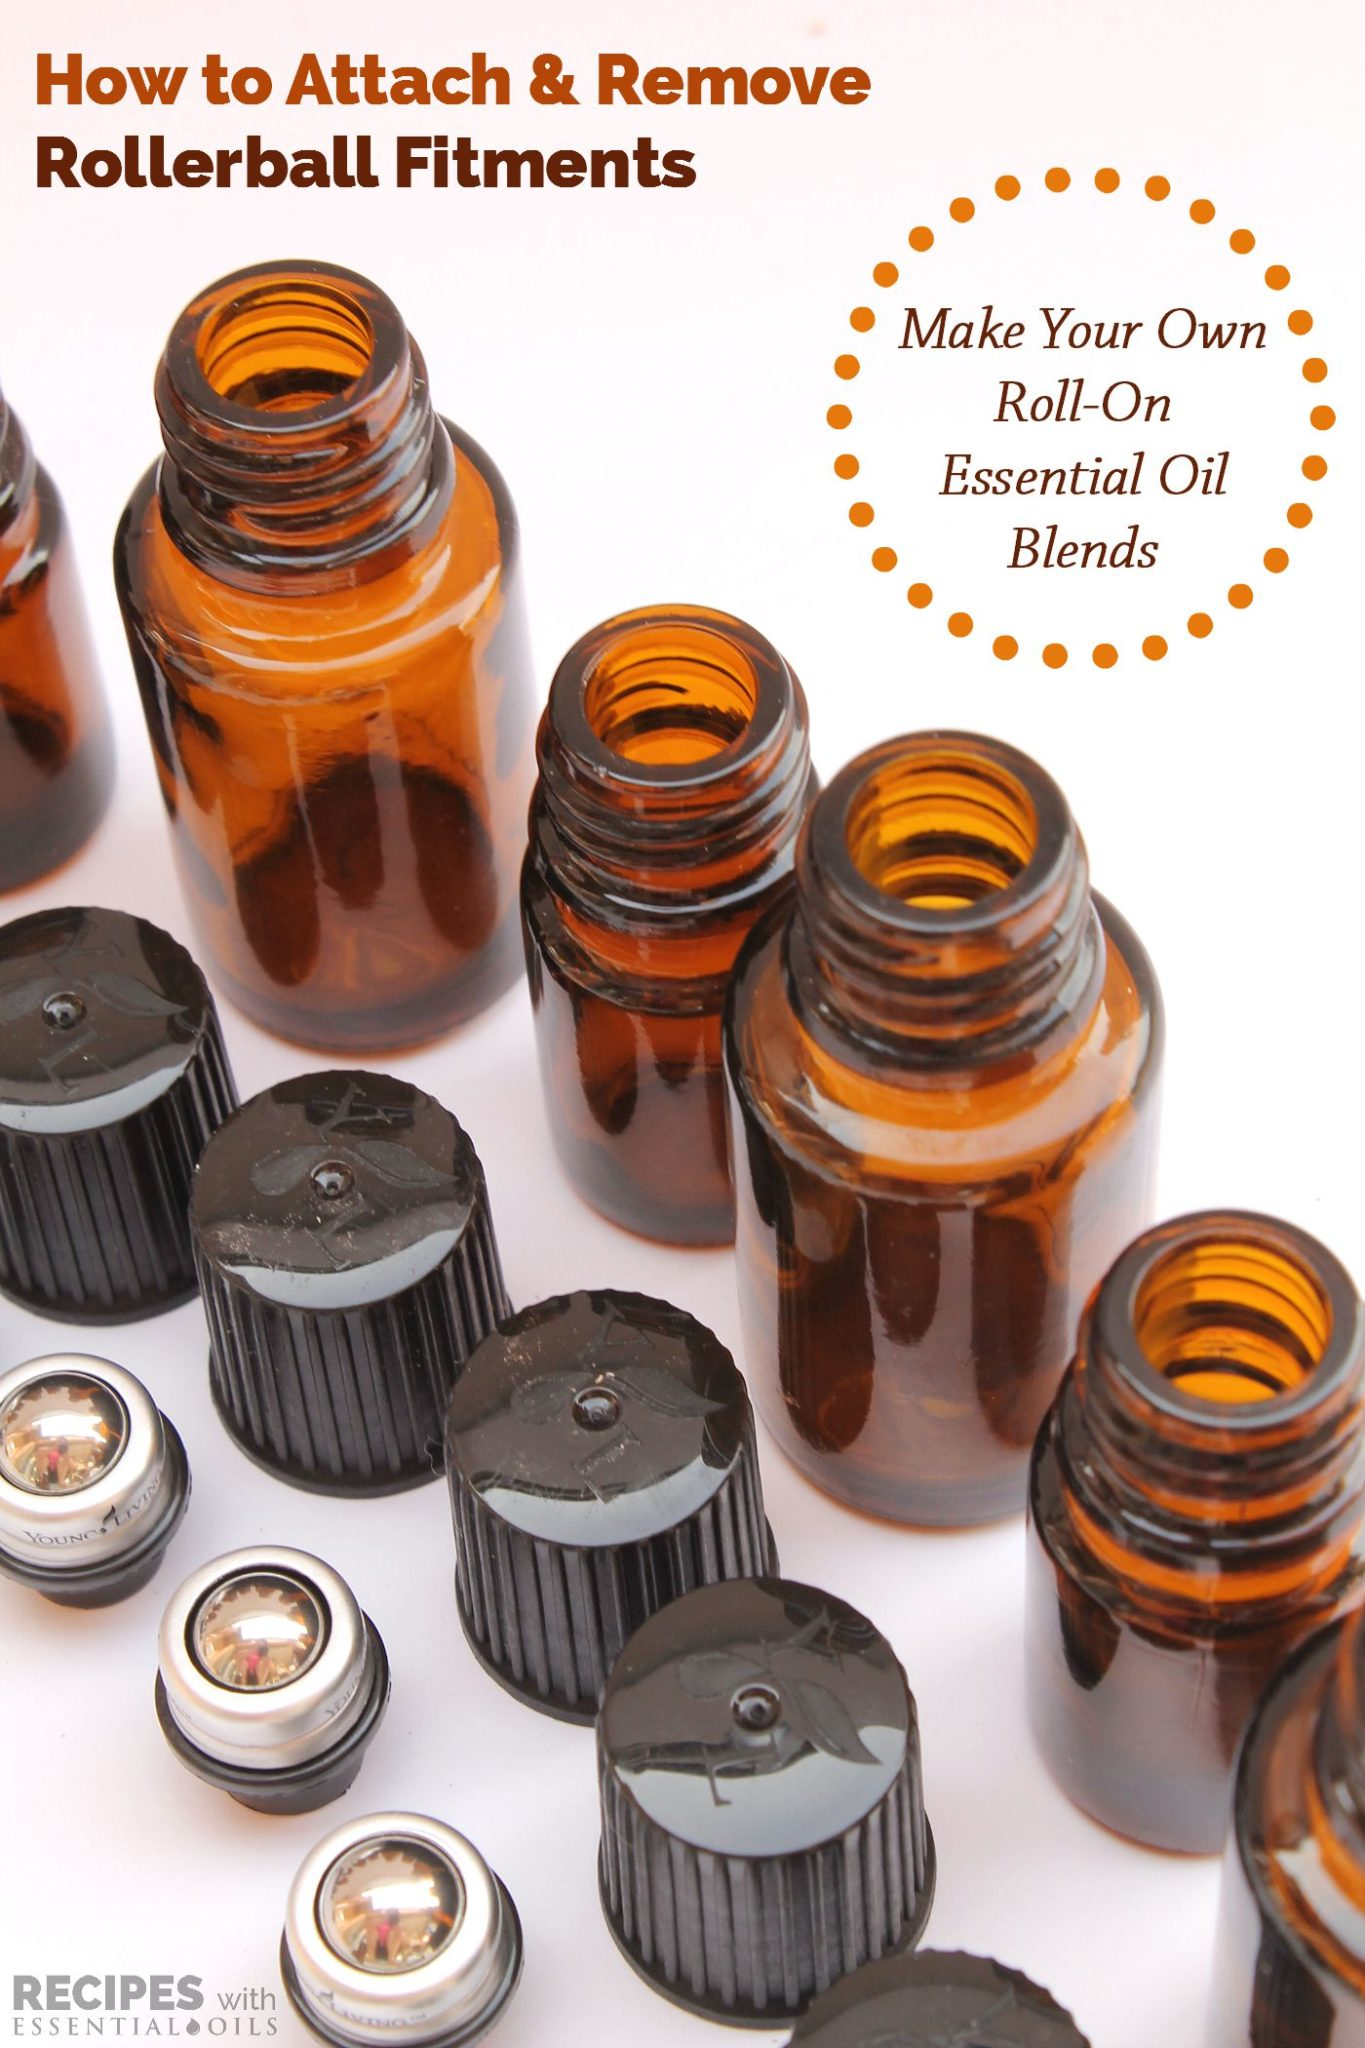 How to Attach and Remove AromaGlide Roller Fitments from RecipesWithEssentialOils.com